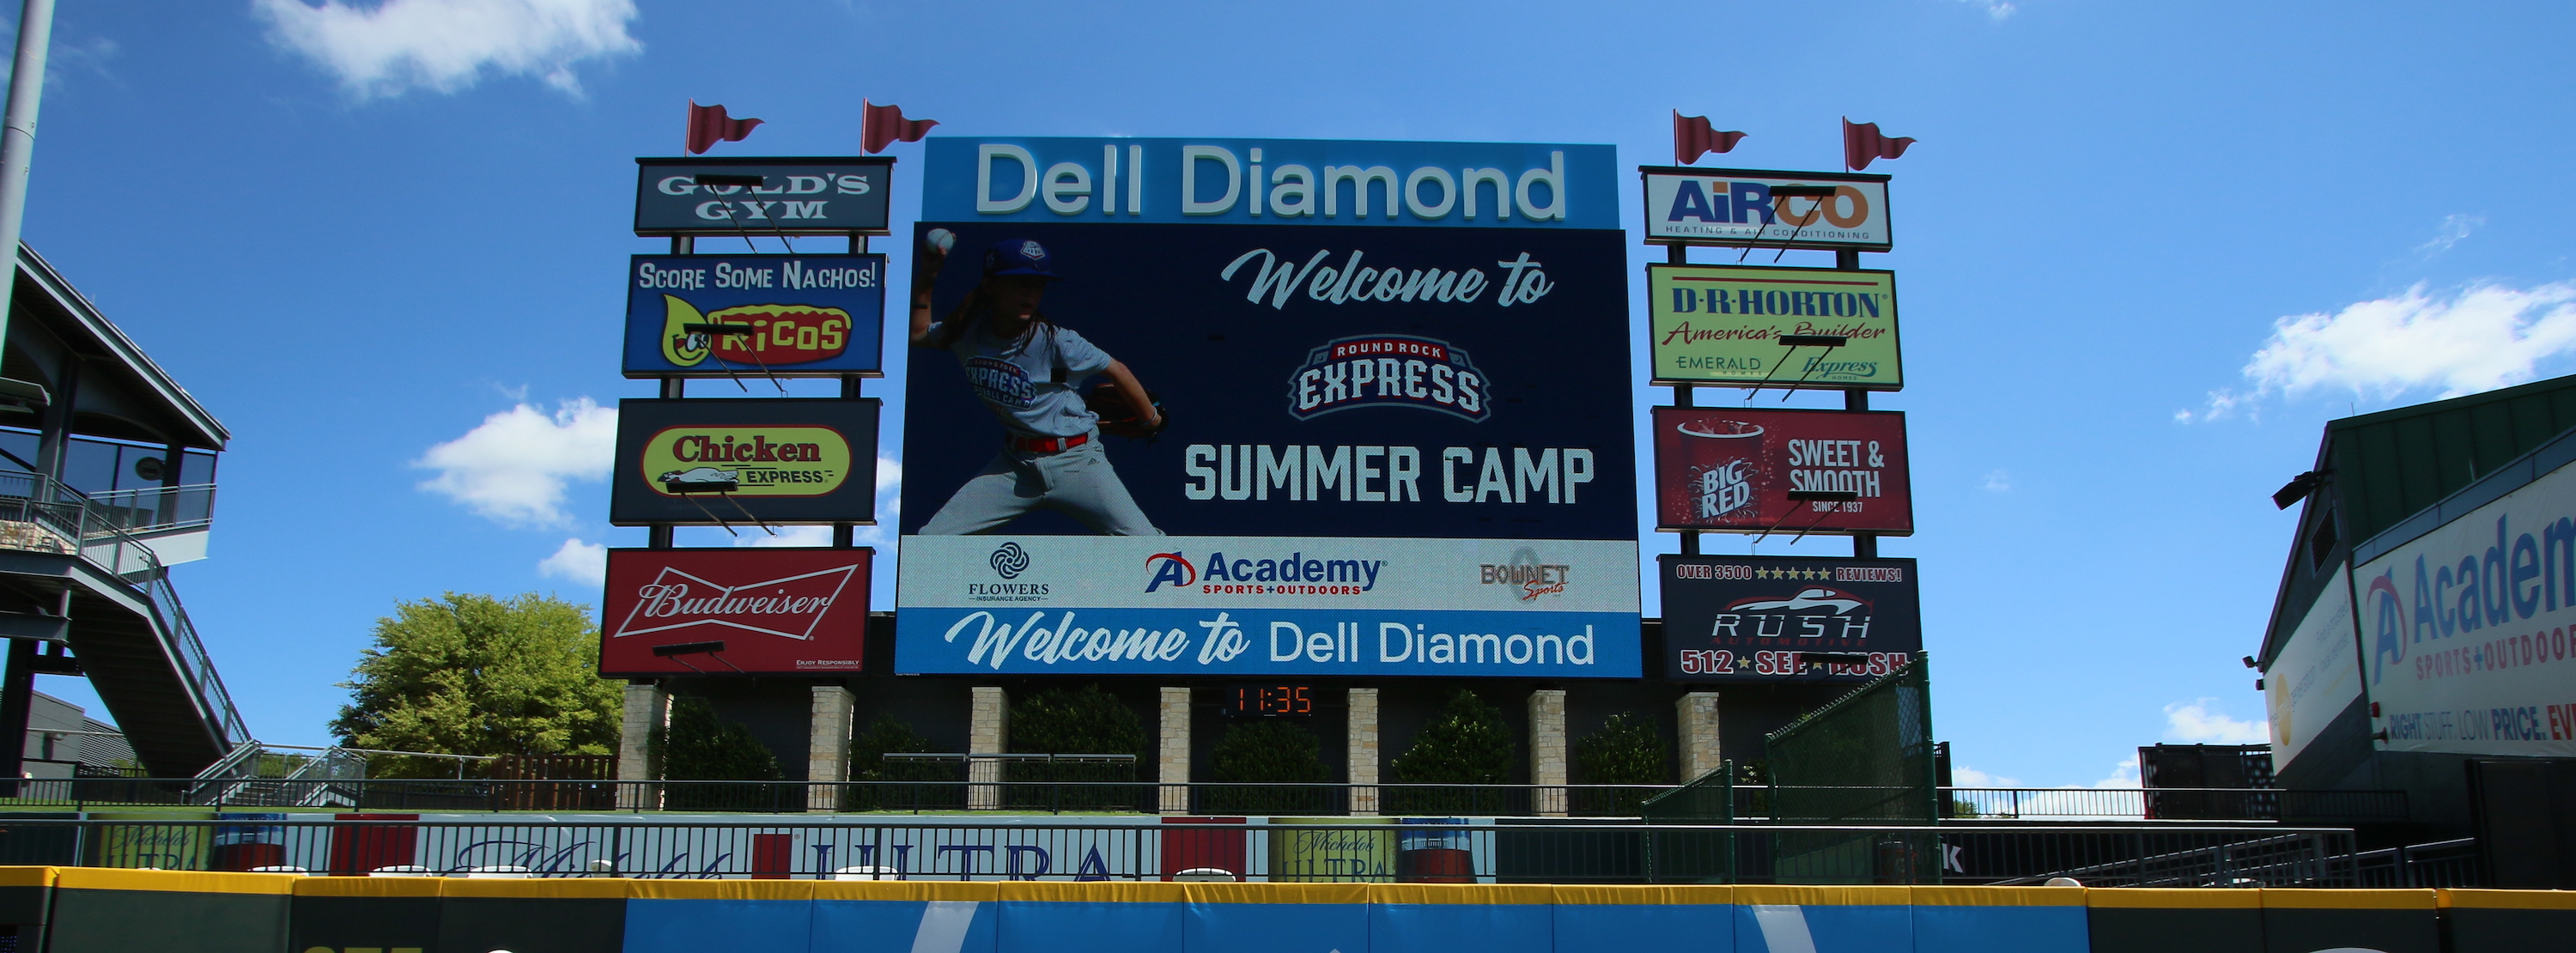 Round Rock Express Showcase Camp